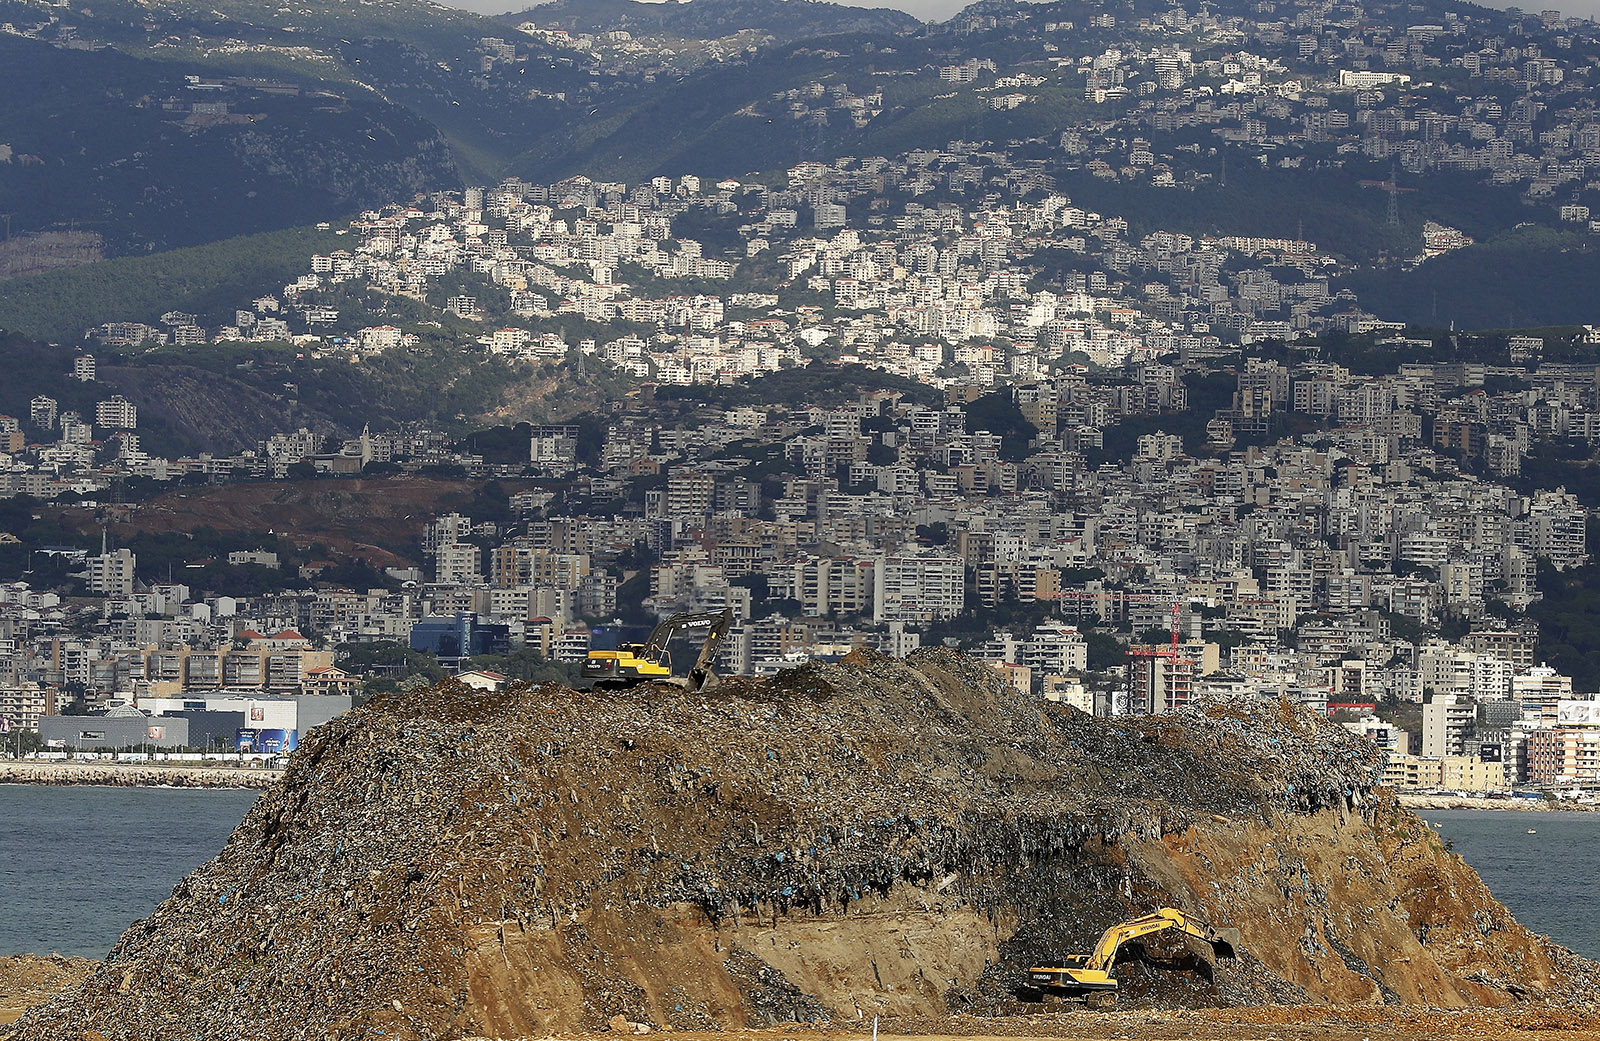 A partial view shows the Karantine garbage dump situated on the northern outskirts of Beirut